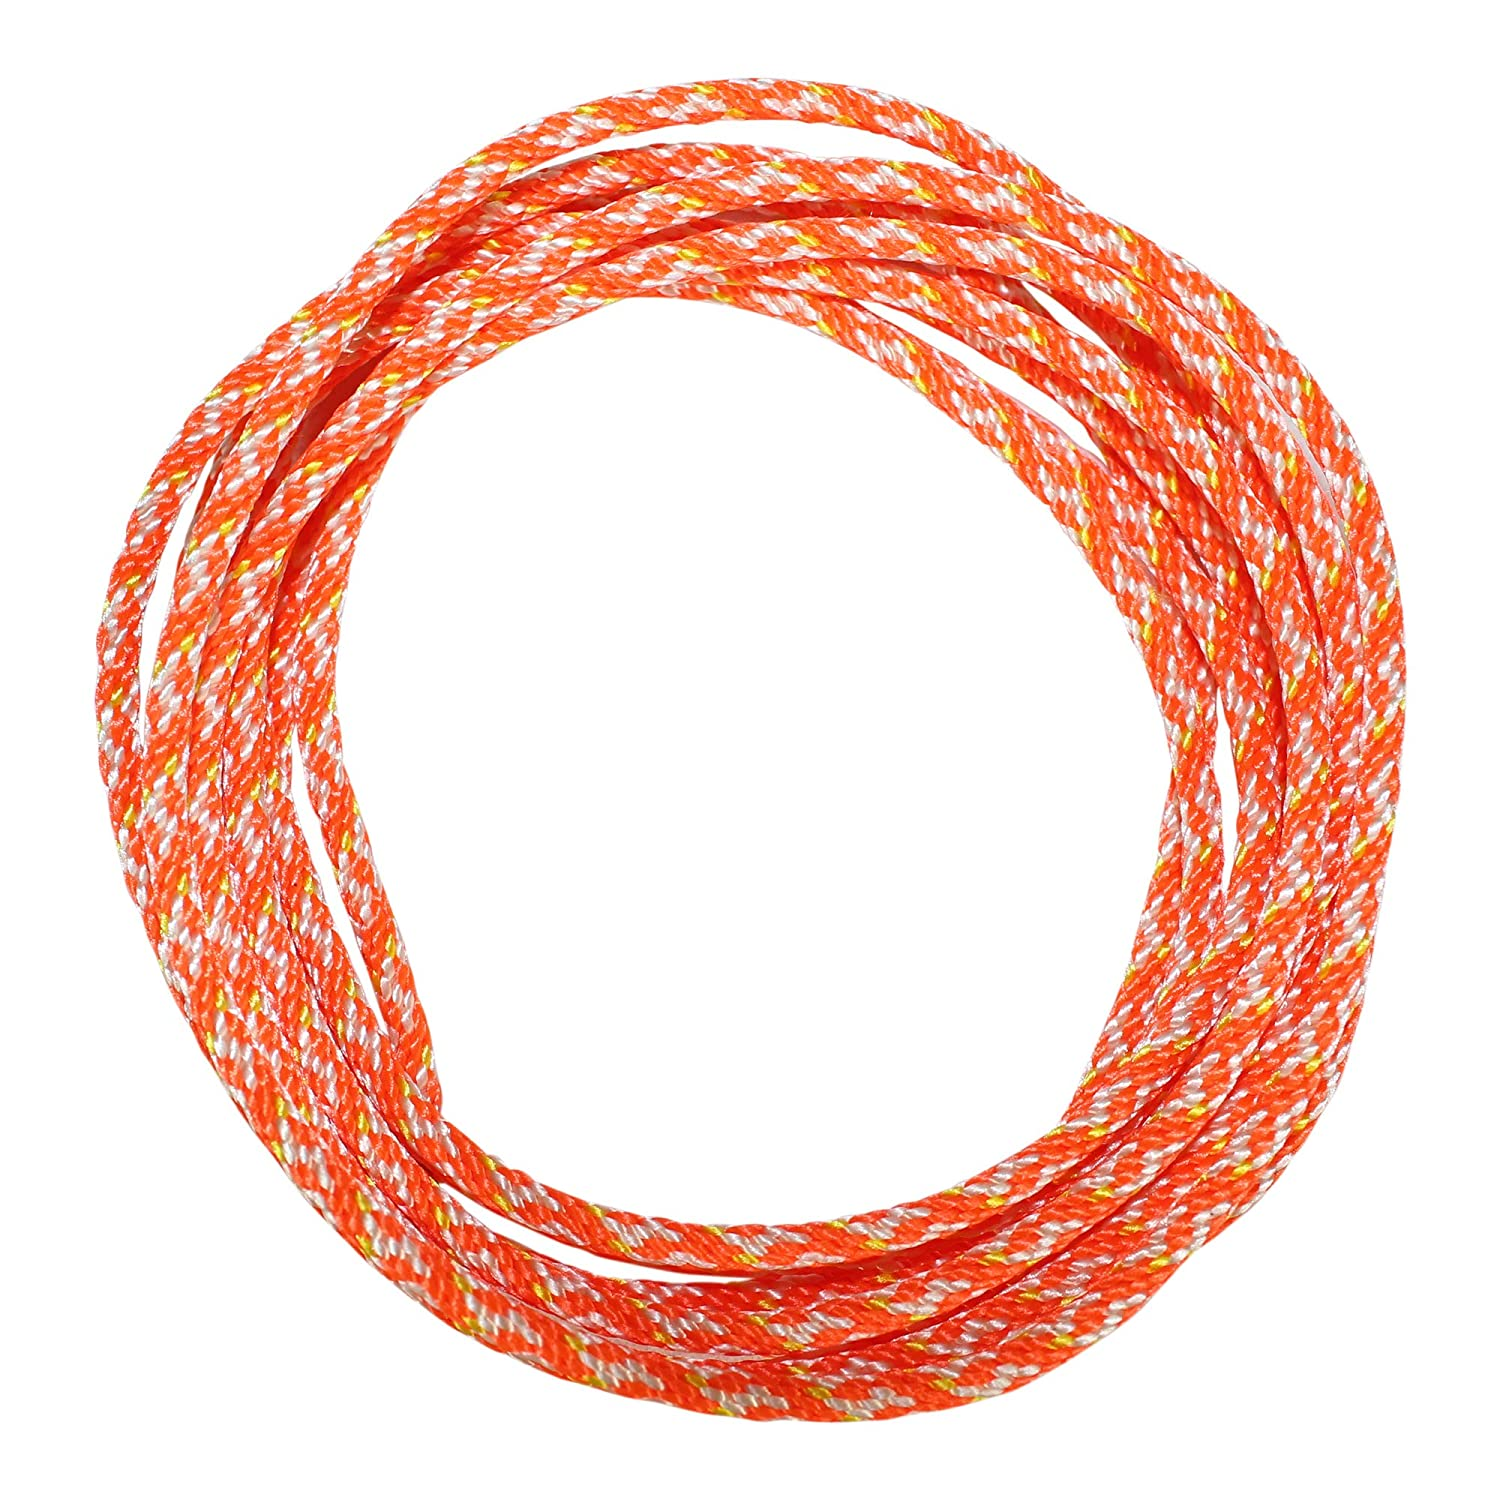 More Dacron Polyester Pull Cord Solid Braid Rope #4 Replacement Cord Rope for Lawn Mowers - SGT KNOTS Snowblowers 50 feet, Orange Small Engine Starter Rope Leaf Blowers Generators